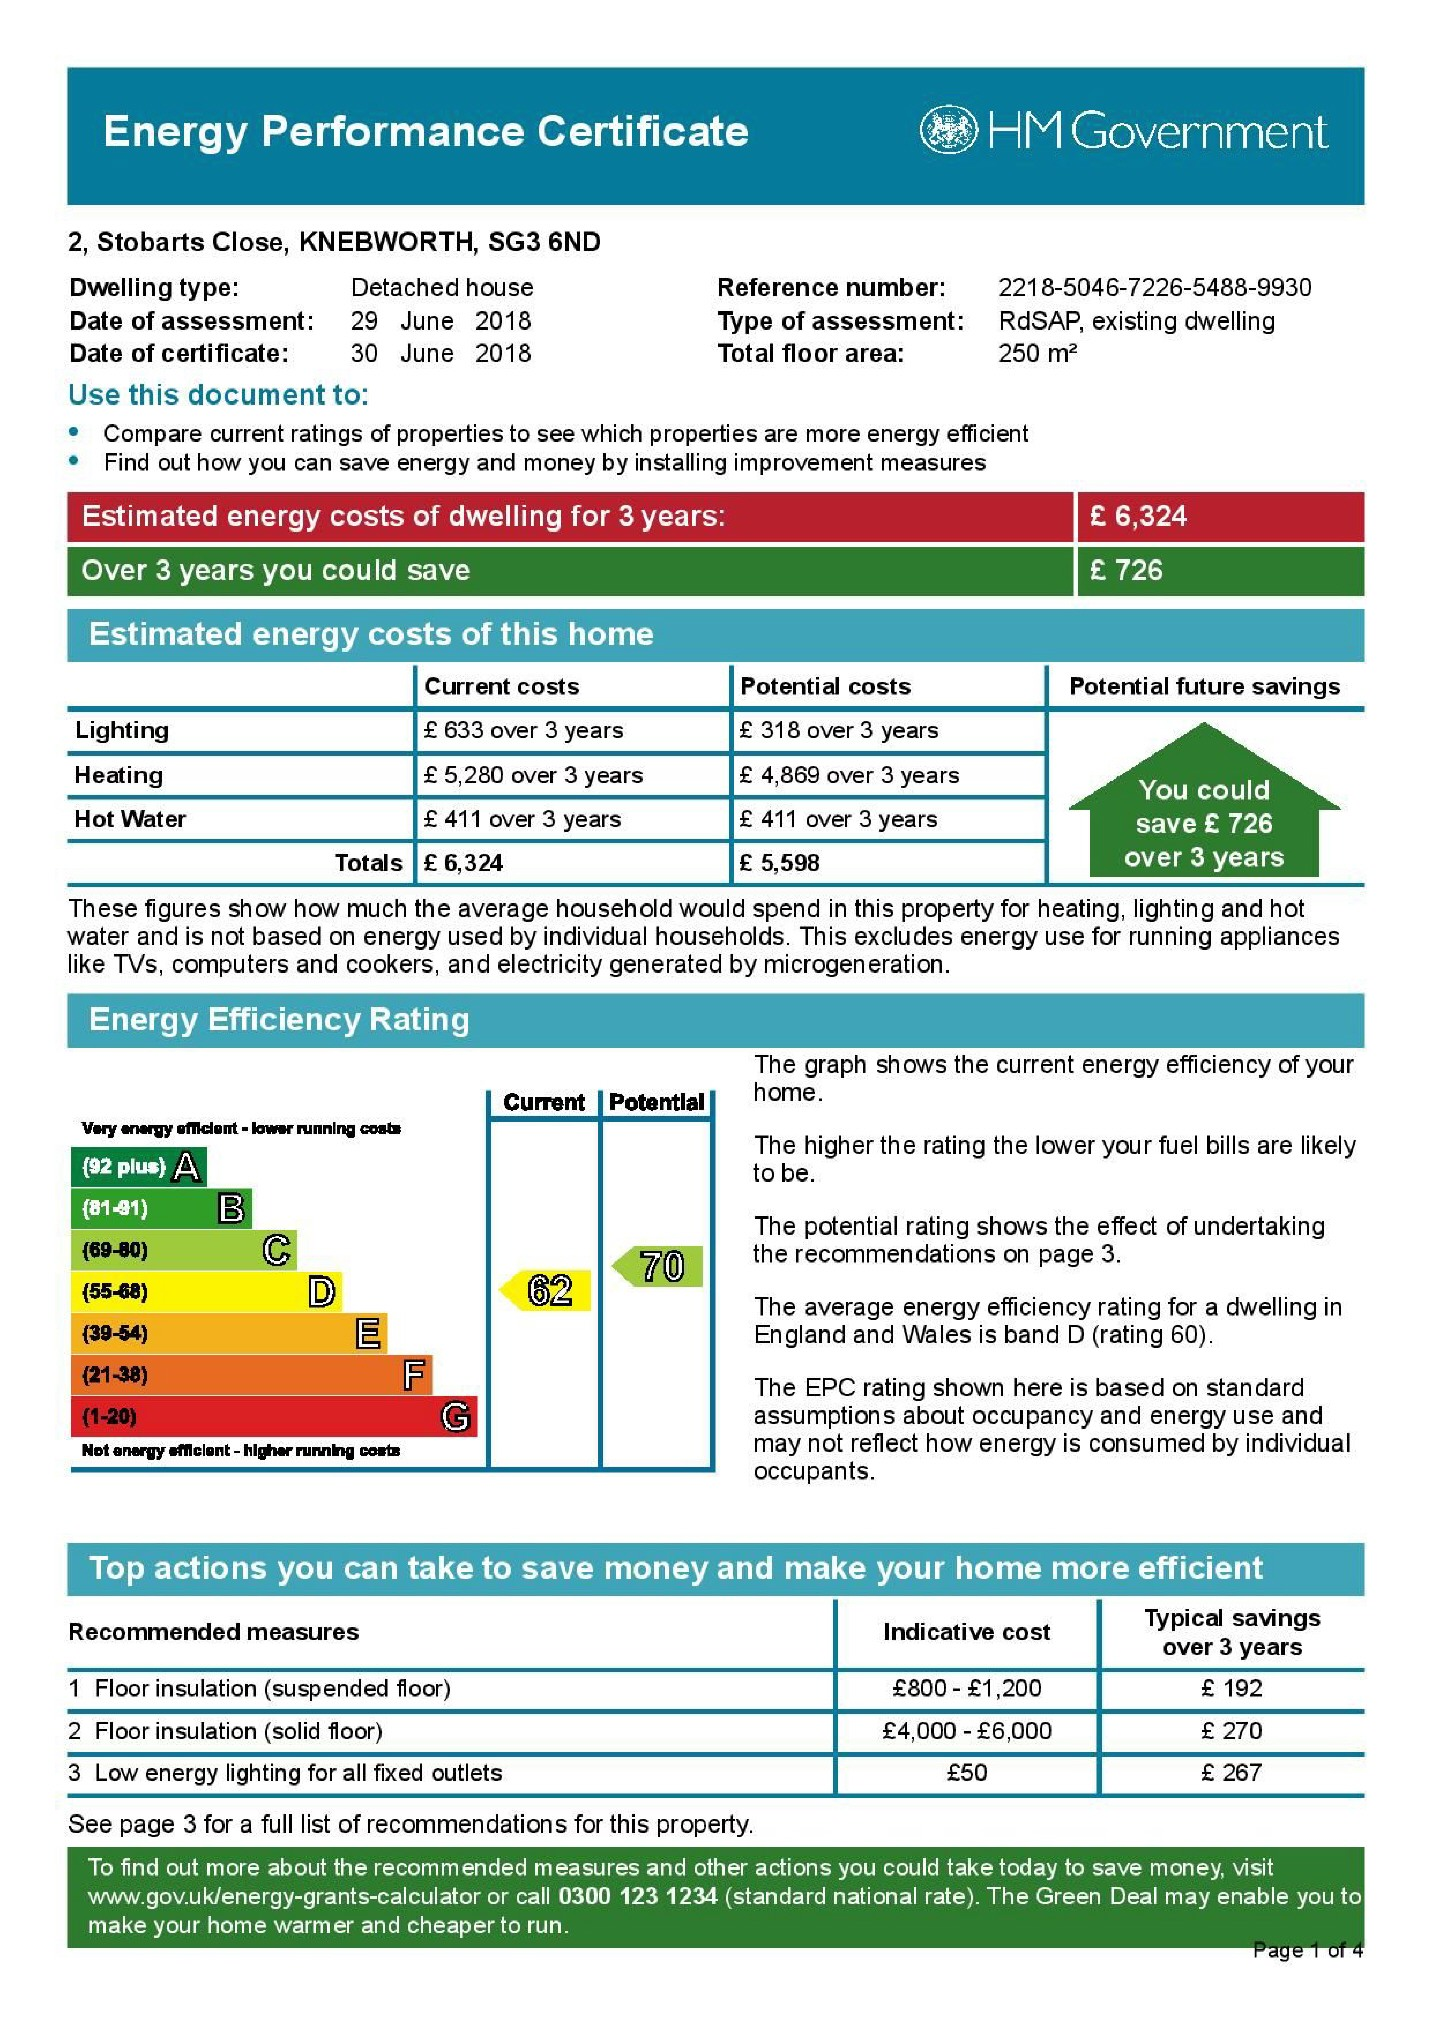 EPC Graph for Stobarts Close, Knebworth, SG3 6ND